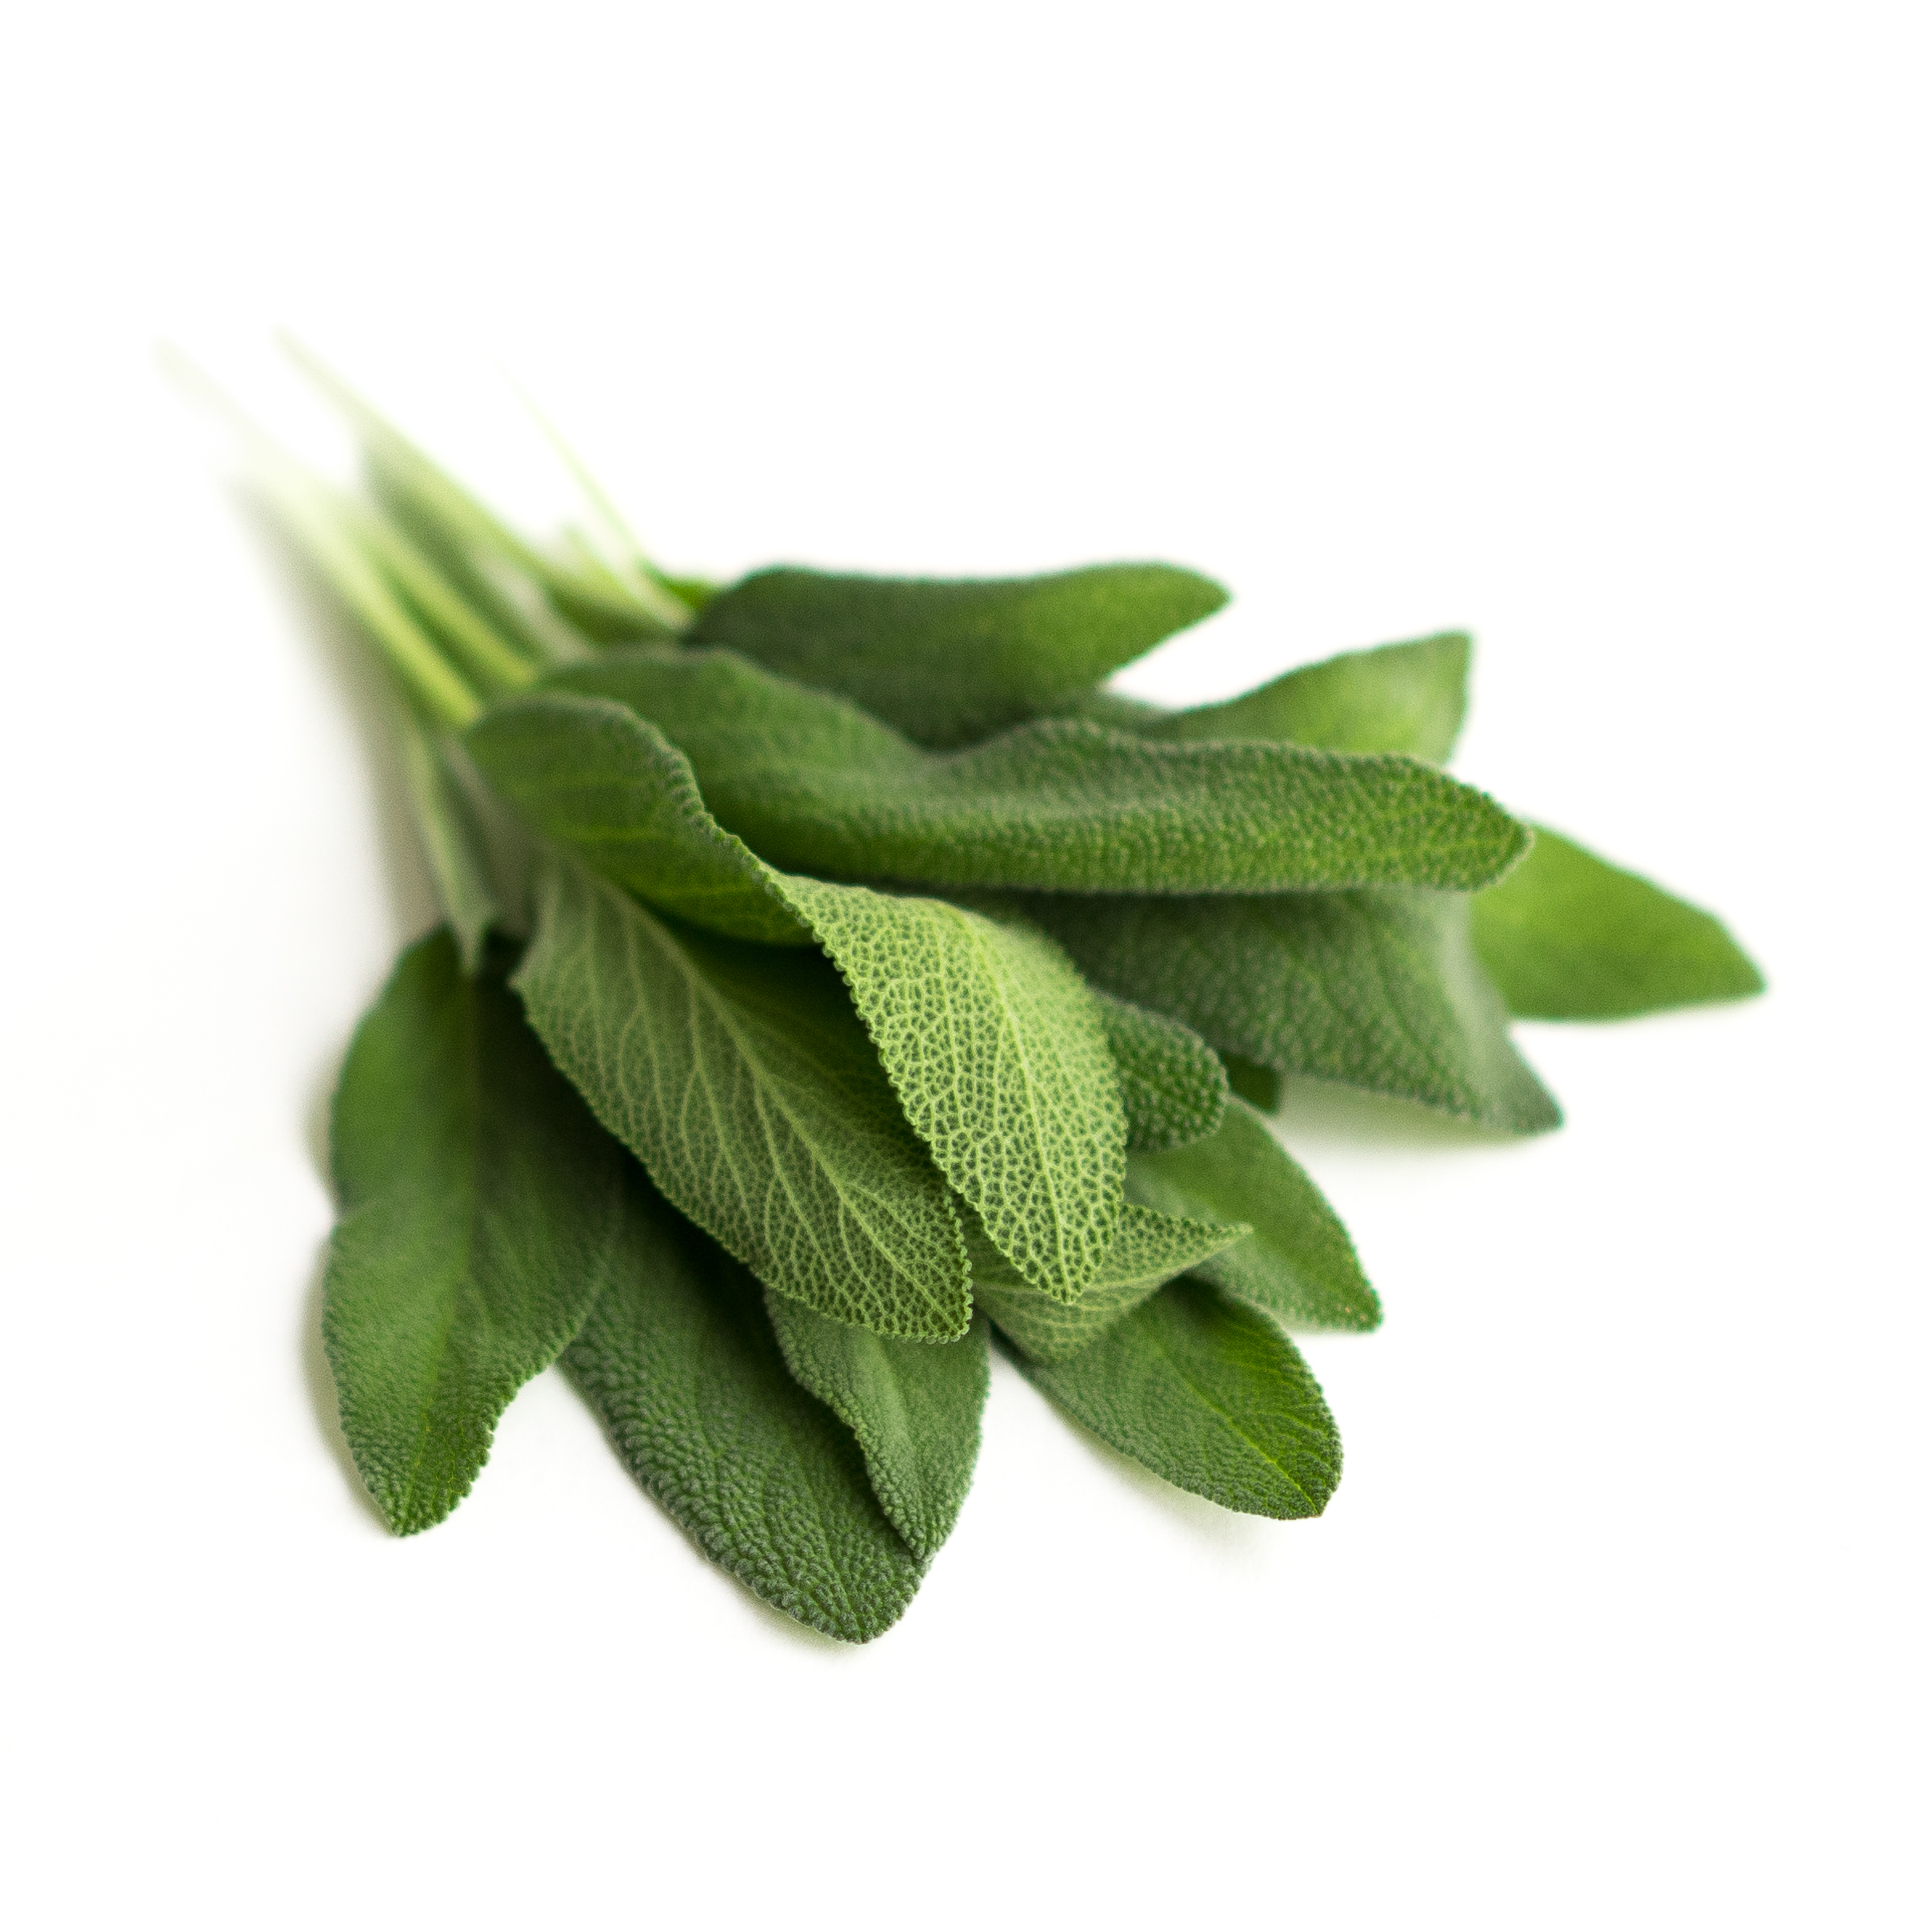 Strong savory herb with musty, minty aroma and soft, large leaves